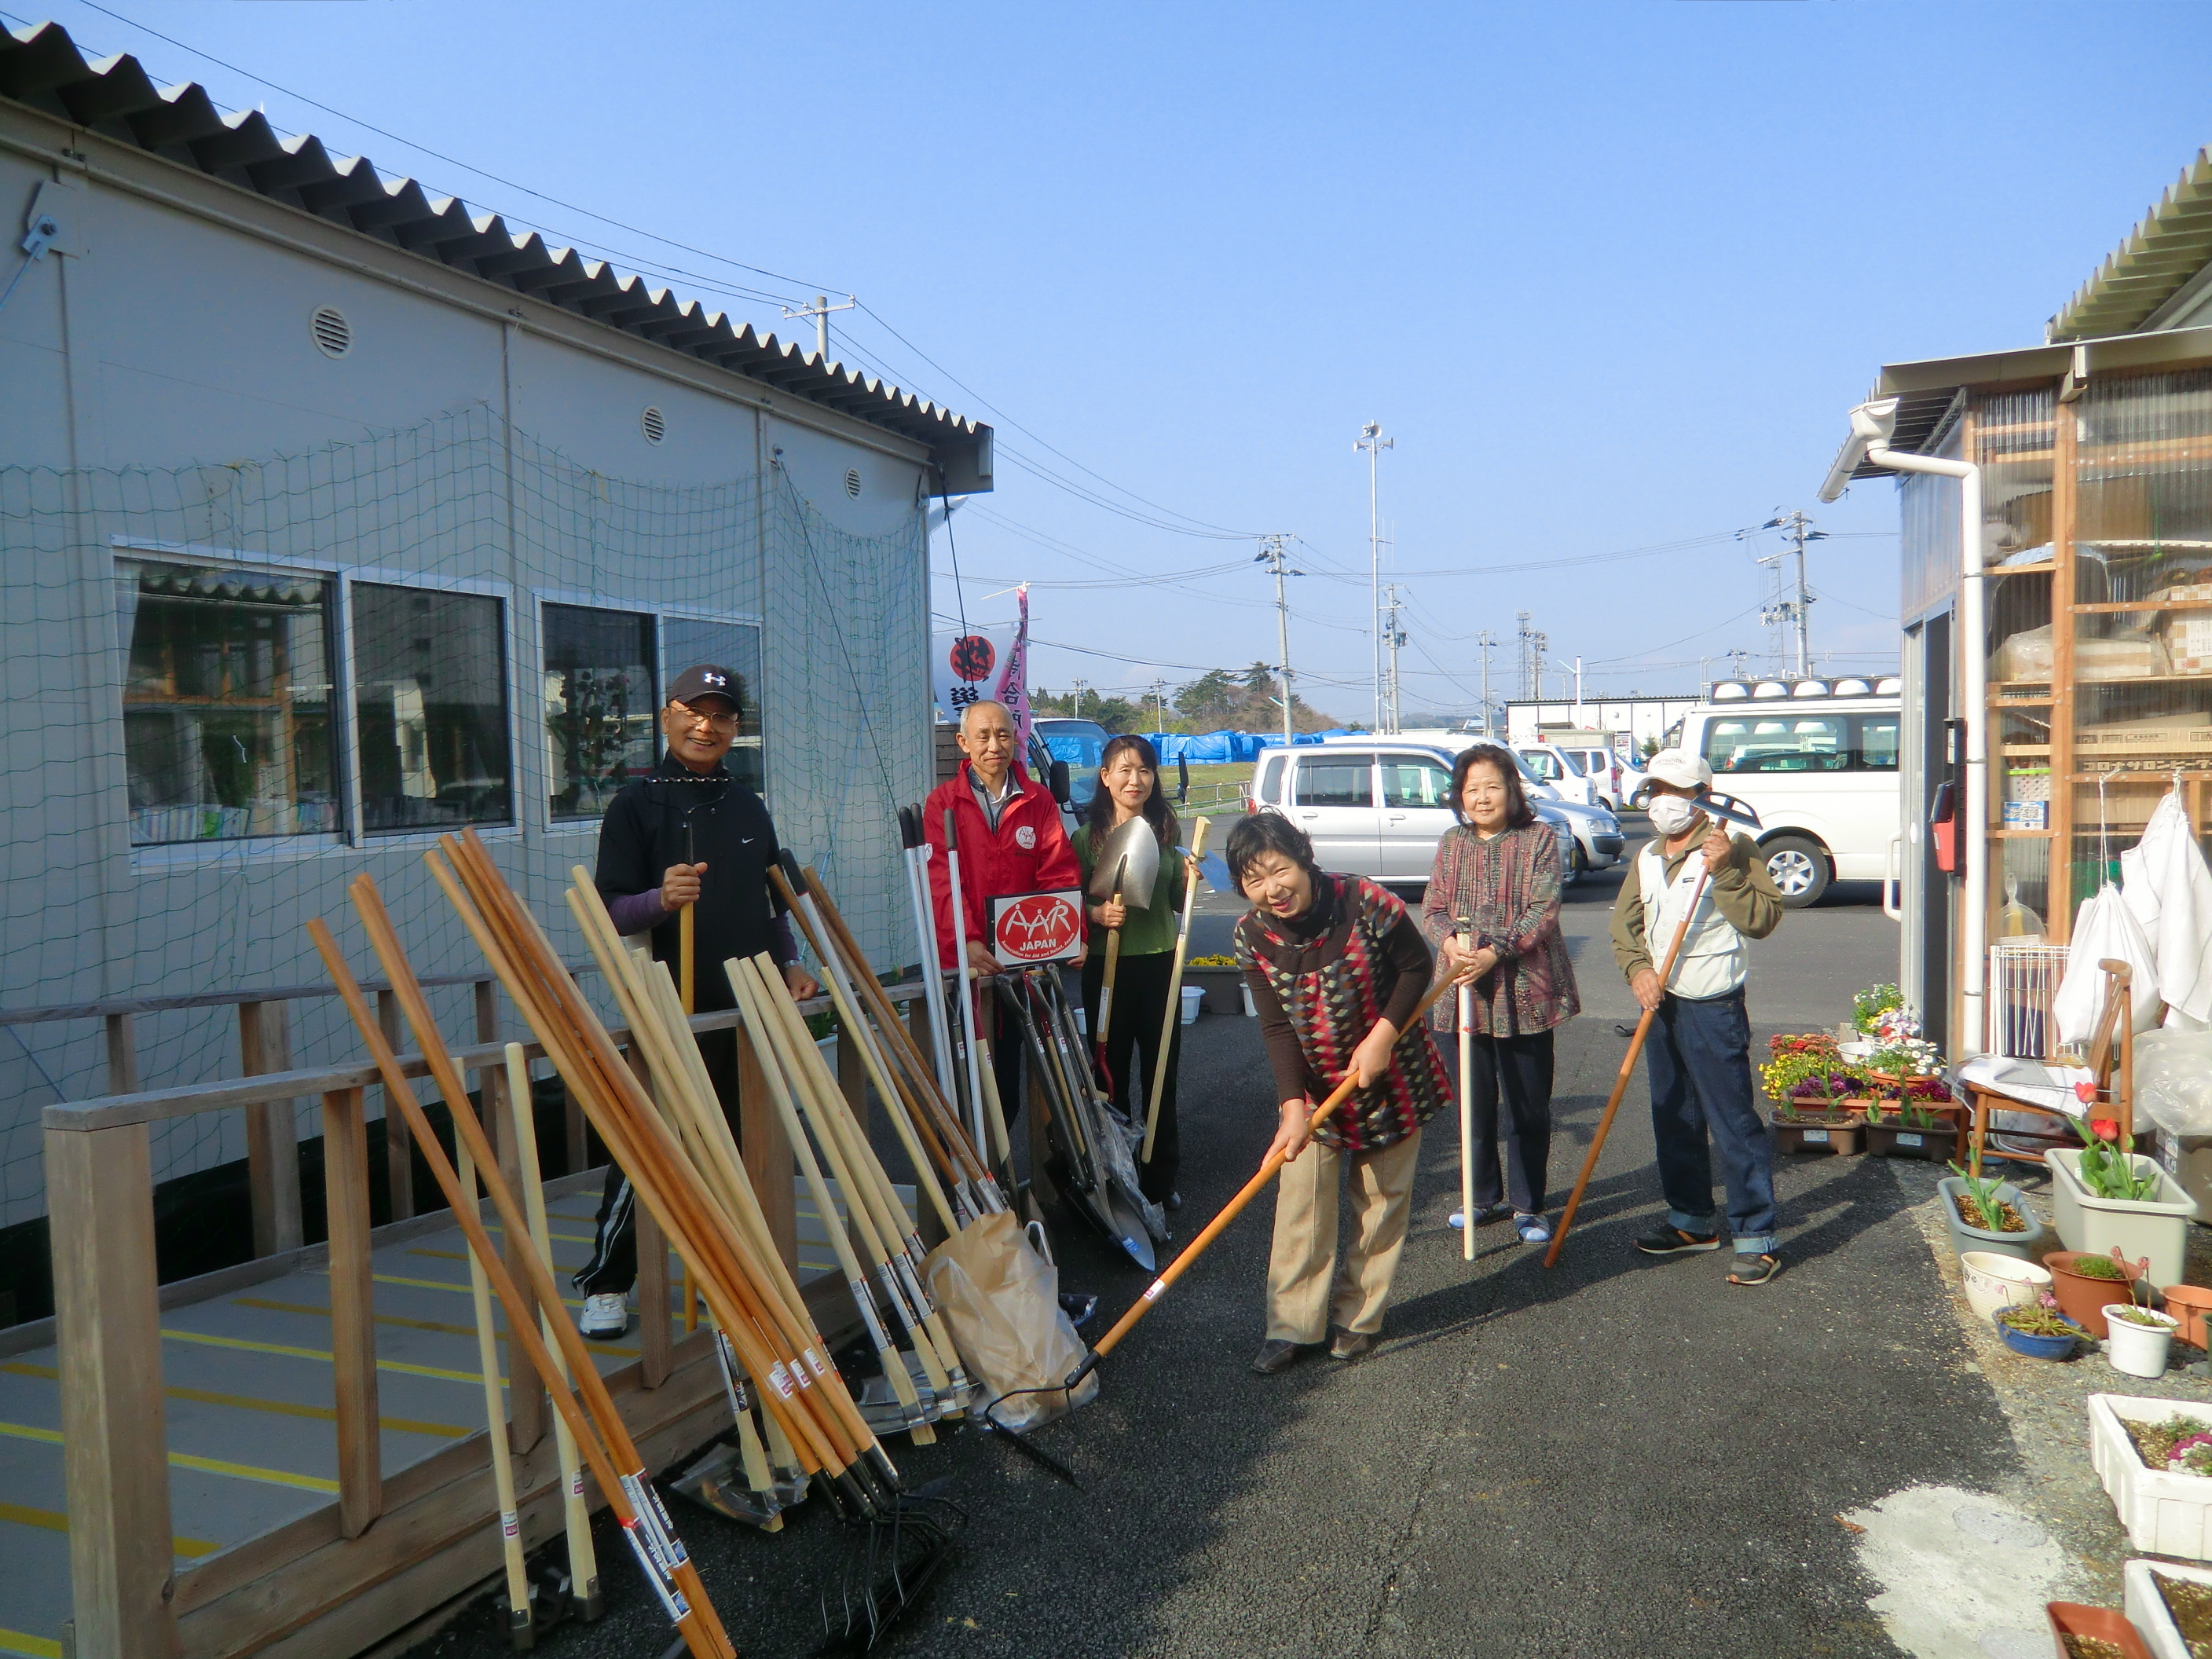 Distribution of farming tools to residents of temporary housing complexes in the disaster-affected area of the Tohoku region, in the effort to revitalize the community through agricultural activities.